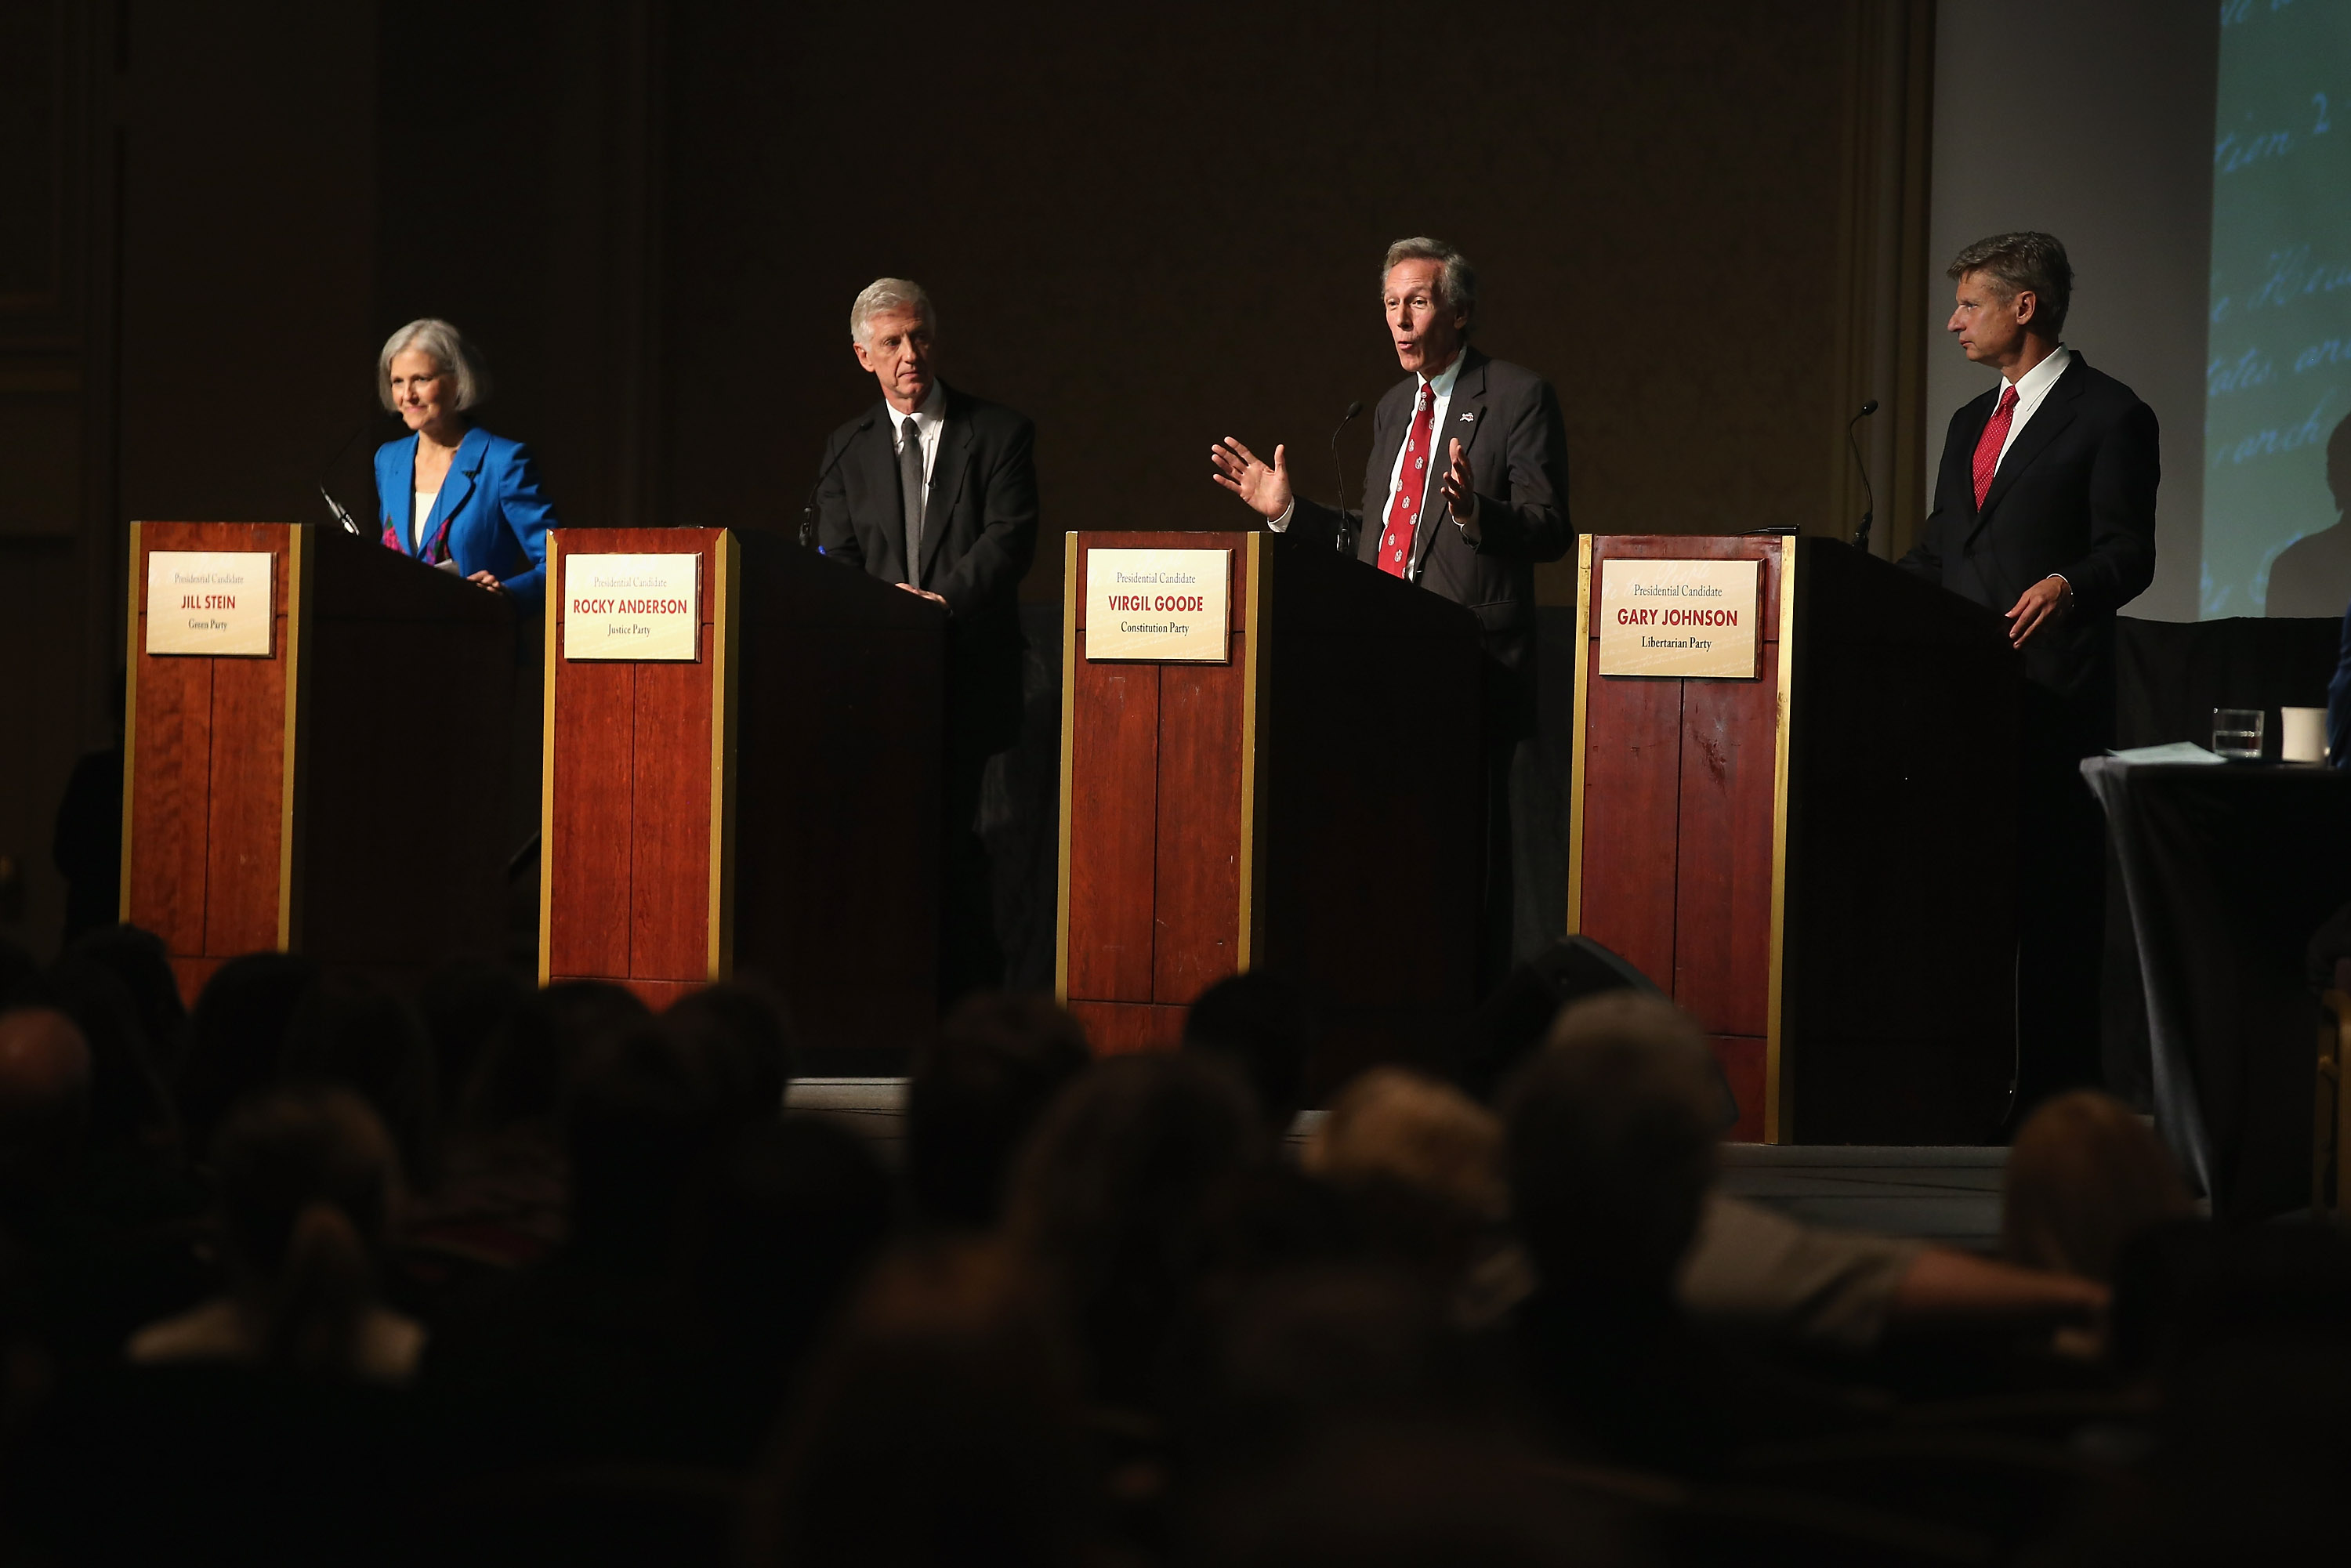 CHICAGO, IL - OCTOBER 23: Constitution Party presidential candidate Virgil Goode (2nd R) makes a point as Jill Stein (L) from the Green Party, Rocky Anderson (2nd L) from the Justice Party and Gary Johnson (R) from the Libertarian Party look on during a debate hosted by the Free and Equal Elections Foundation and moderated by former CNN talk-show host Larry King on October 23, 2012 in Chicago, Illinois. The 90-minute debate held at the Chicago Hilton hotel featured presidential candidates from the Green Party, Libertarian Party, Constitution Party and Justice Party. (Photo by Scott Olson/Getty Images)